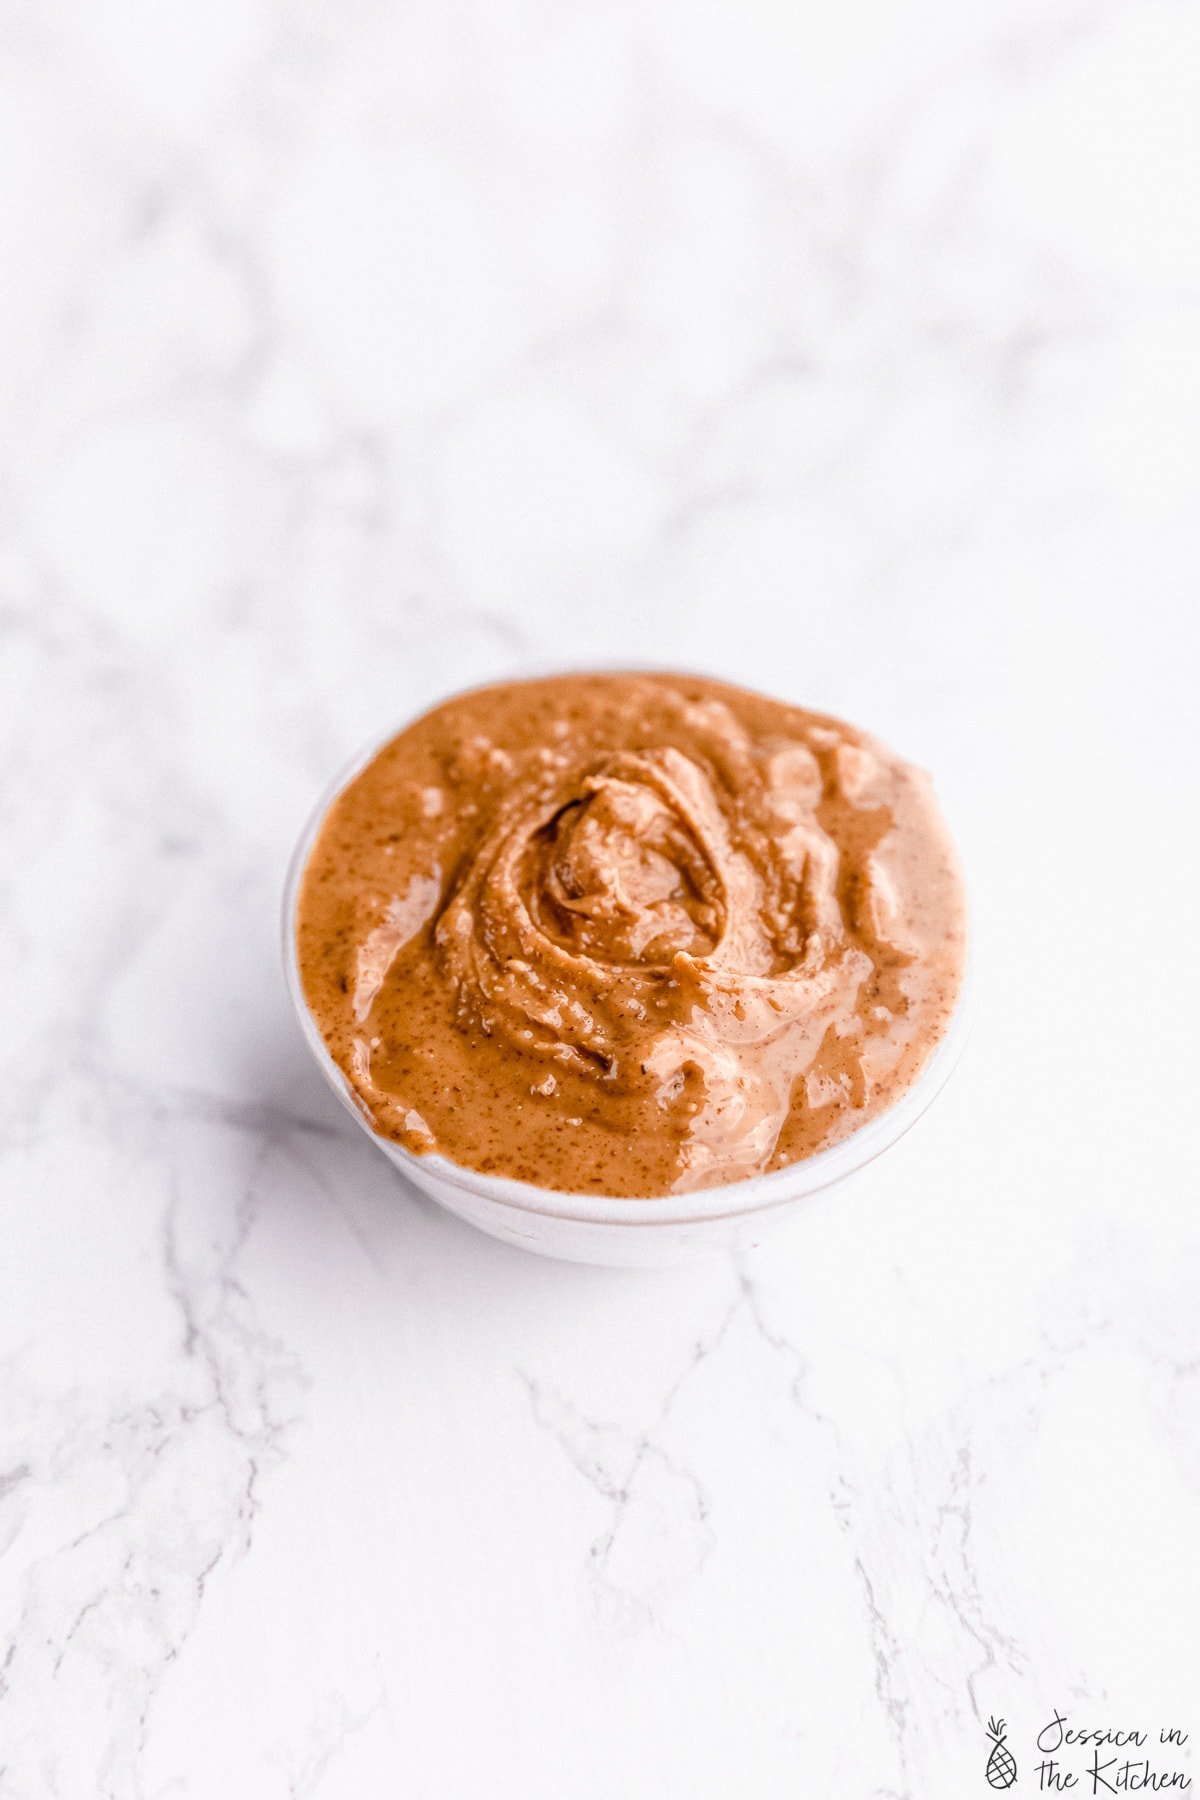 peanut butter in a small container